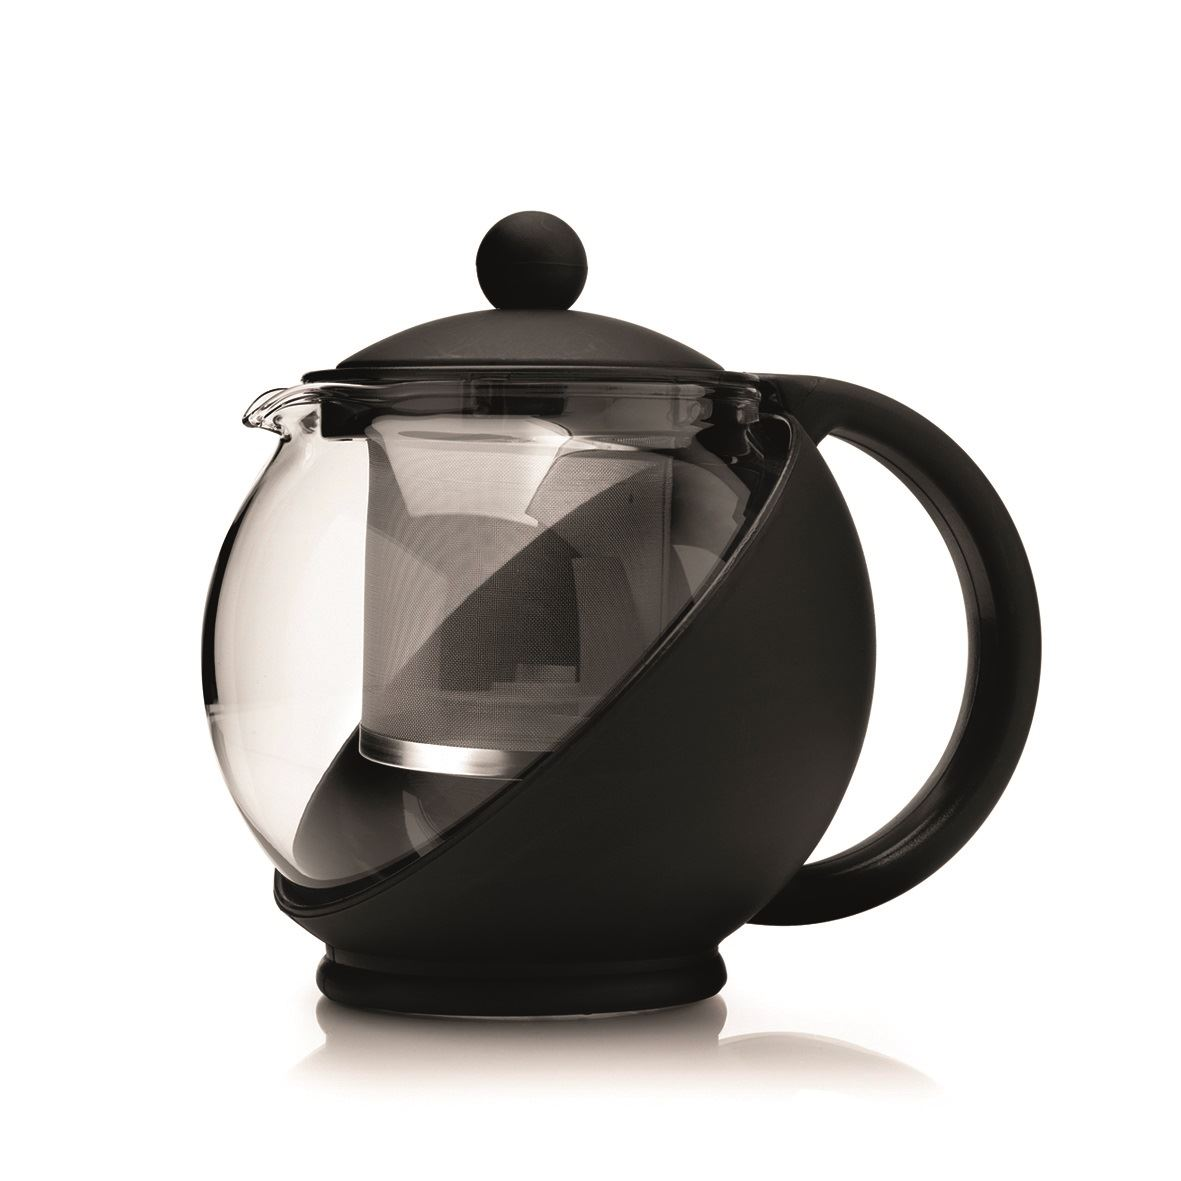 Tea Kettle With Strainer Kilo Glass Teapot Tea Pot With Infuser 2 Cup Or 4 Cup Ebay